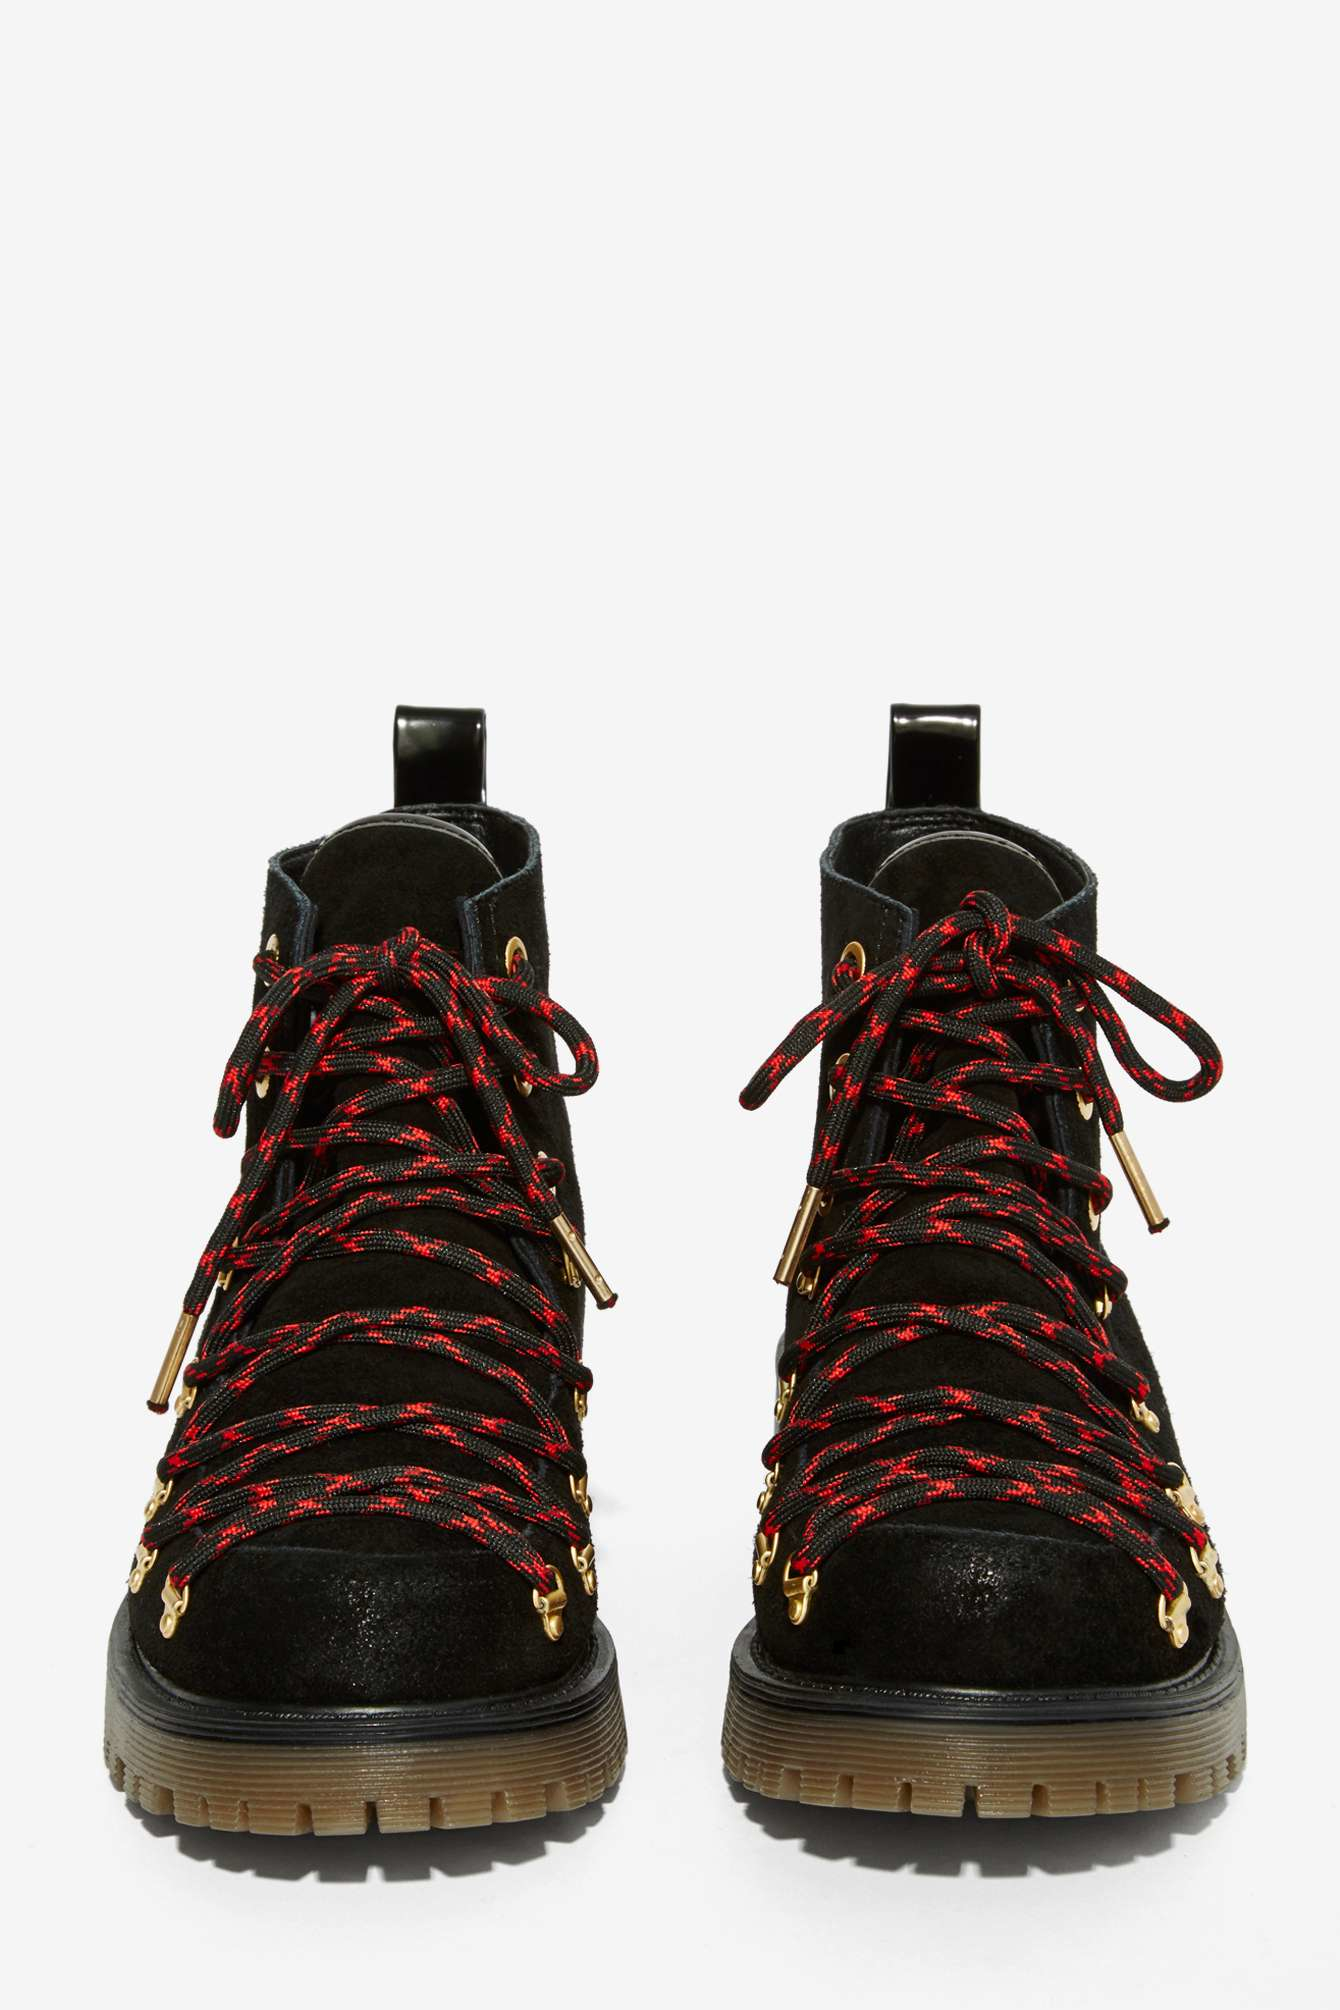 bacf0c978 Lyst - Circus by Sam Edelman Kane Suede Boot in Black